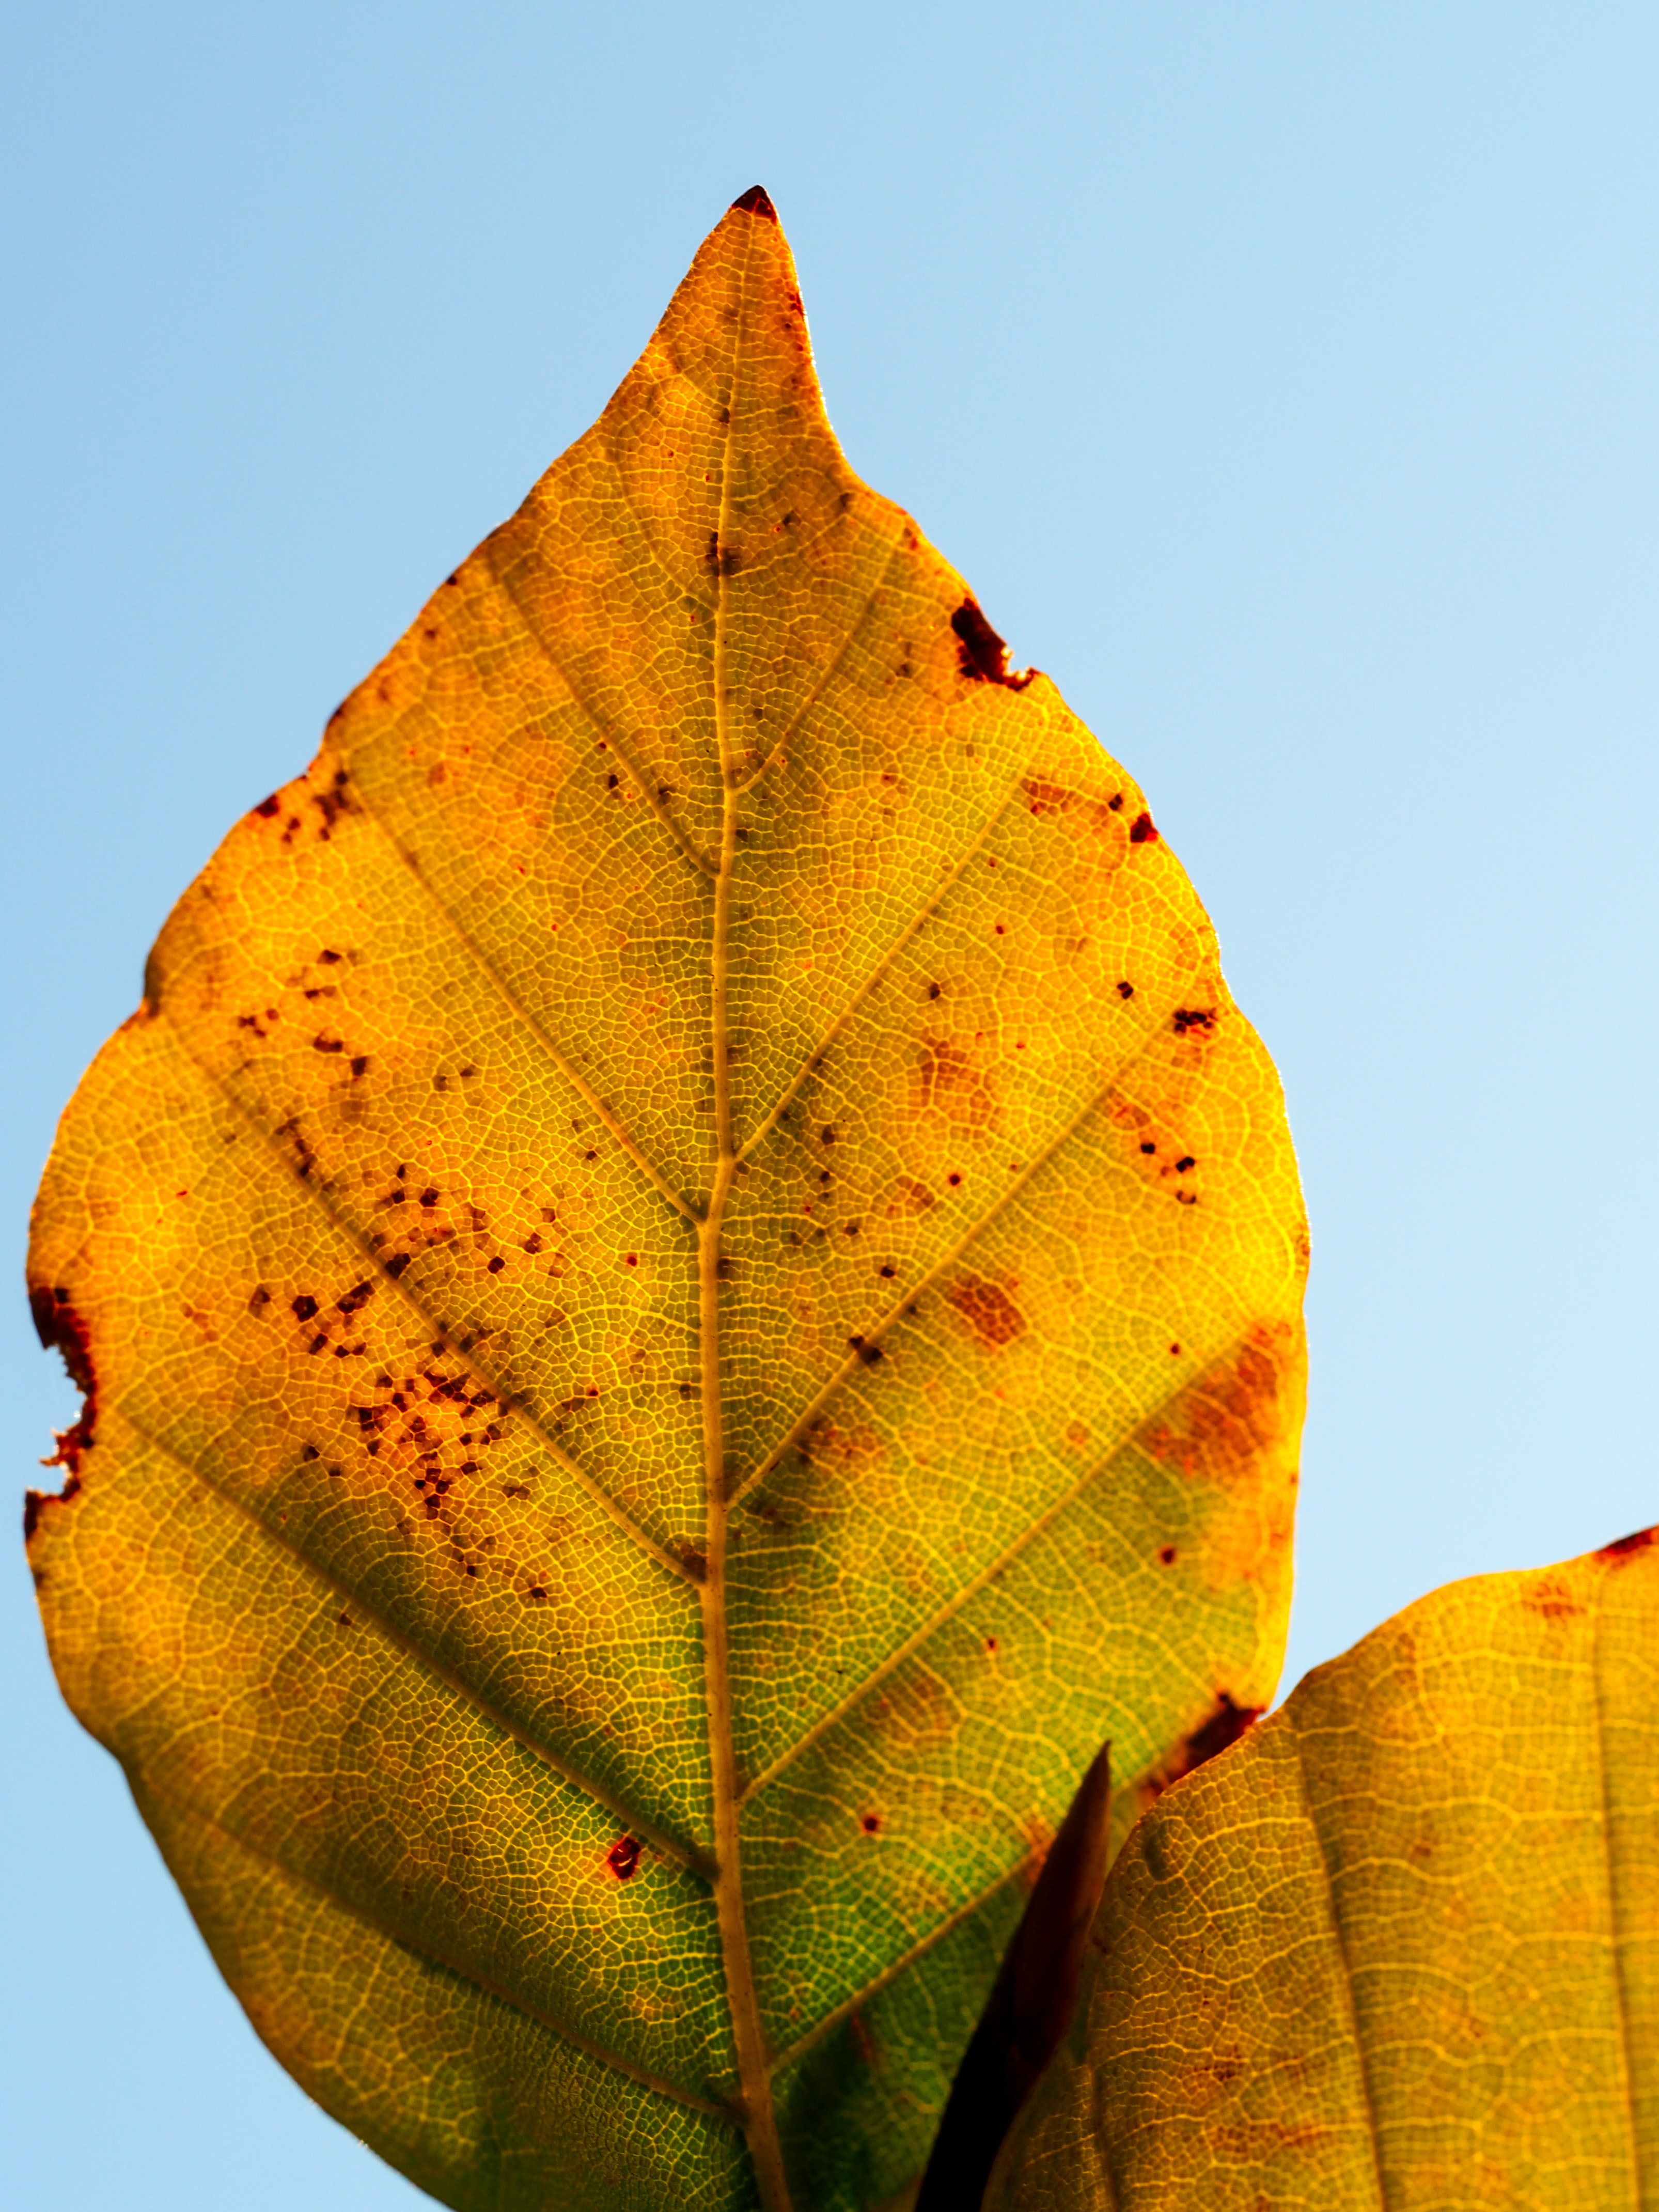 Details on an orange and yellow autumn leaf